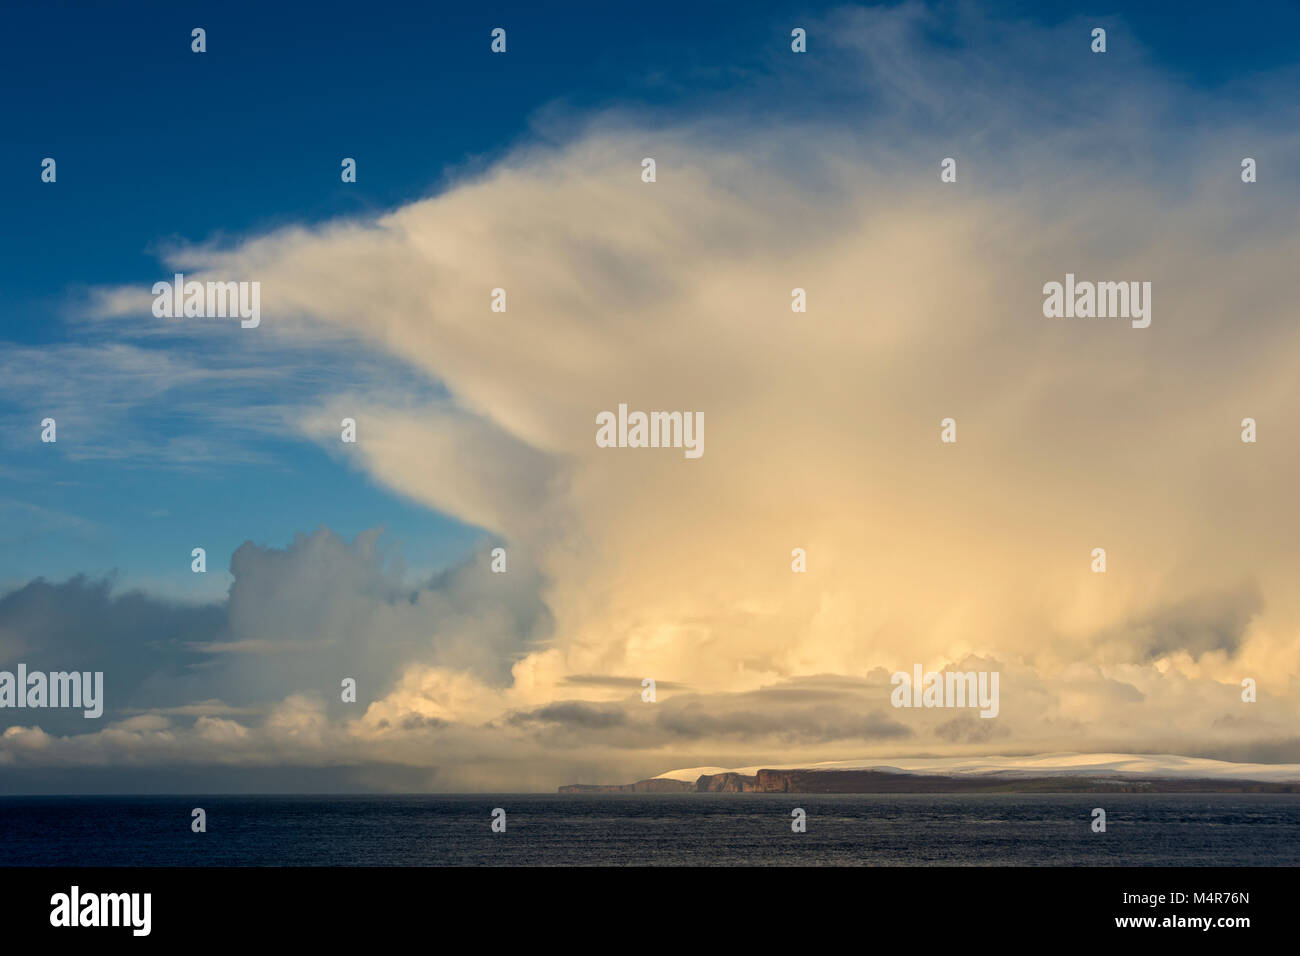 Cumulonimbus cloud over the island of Hoy, Orkney Isles, and the Pentland Firth, from near the village of Mey, Caithness, - Stock Image